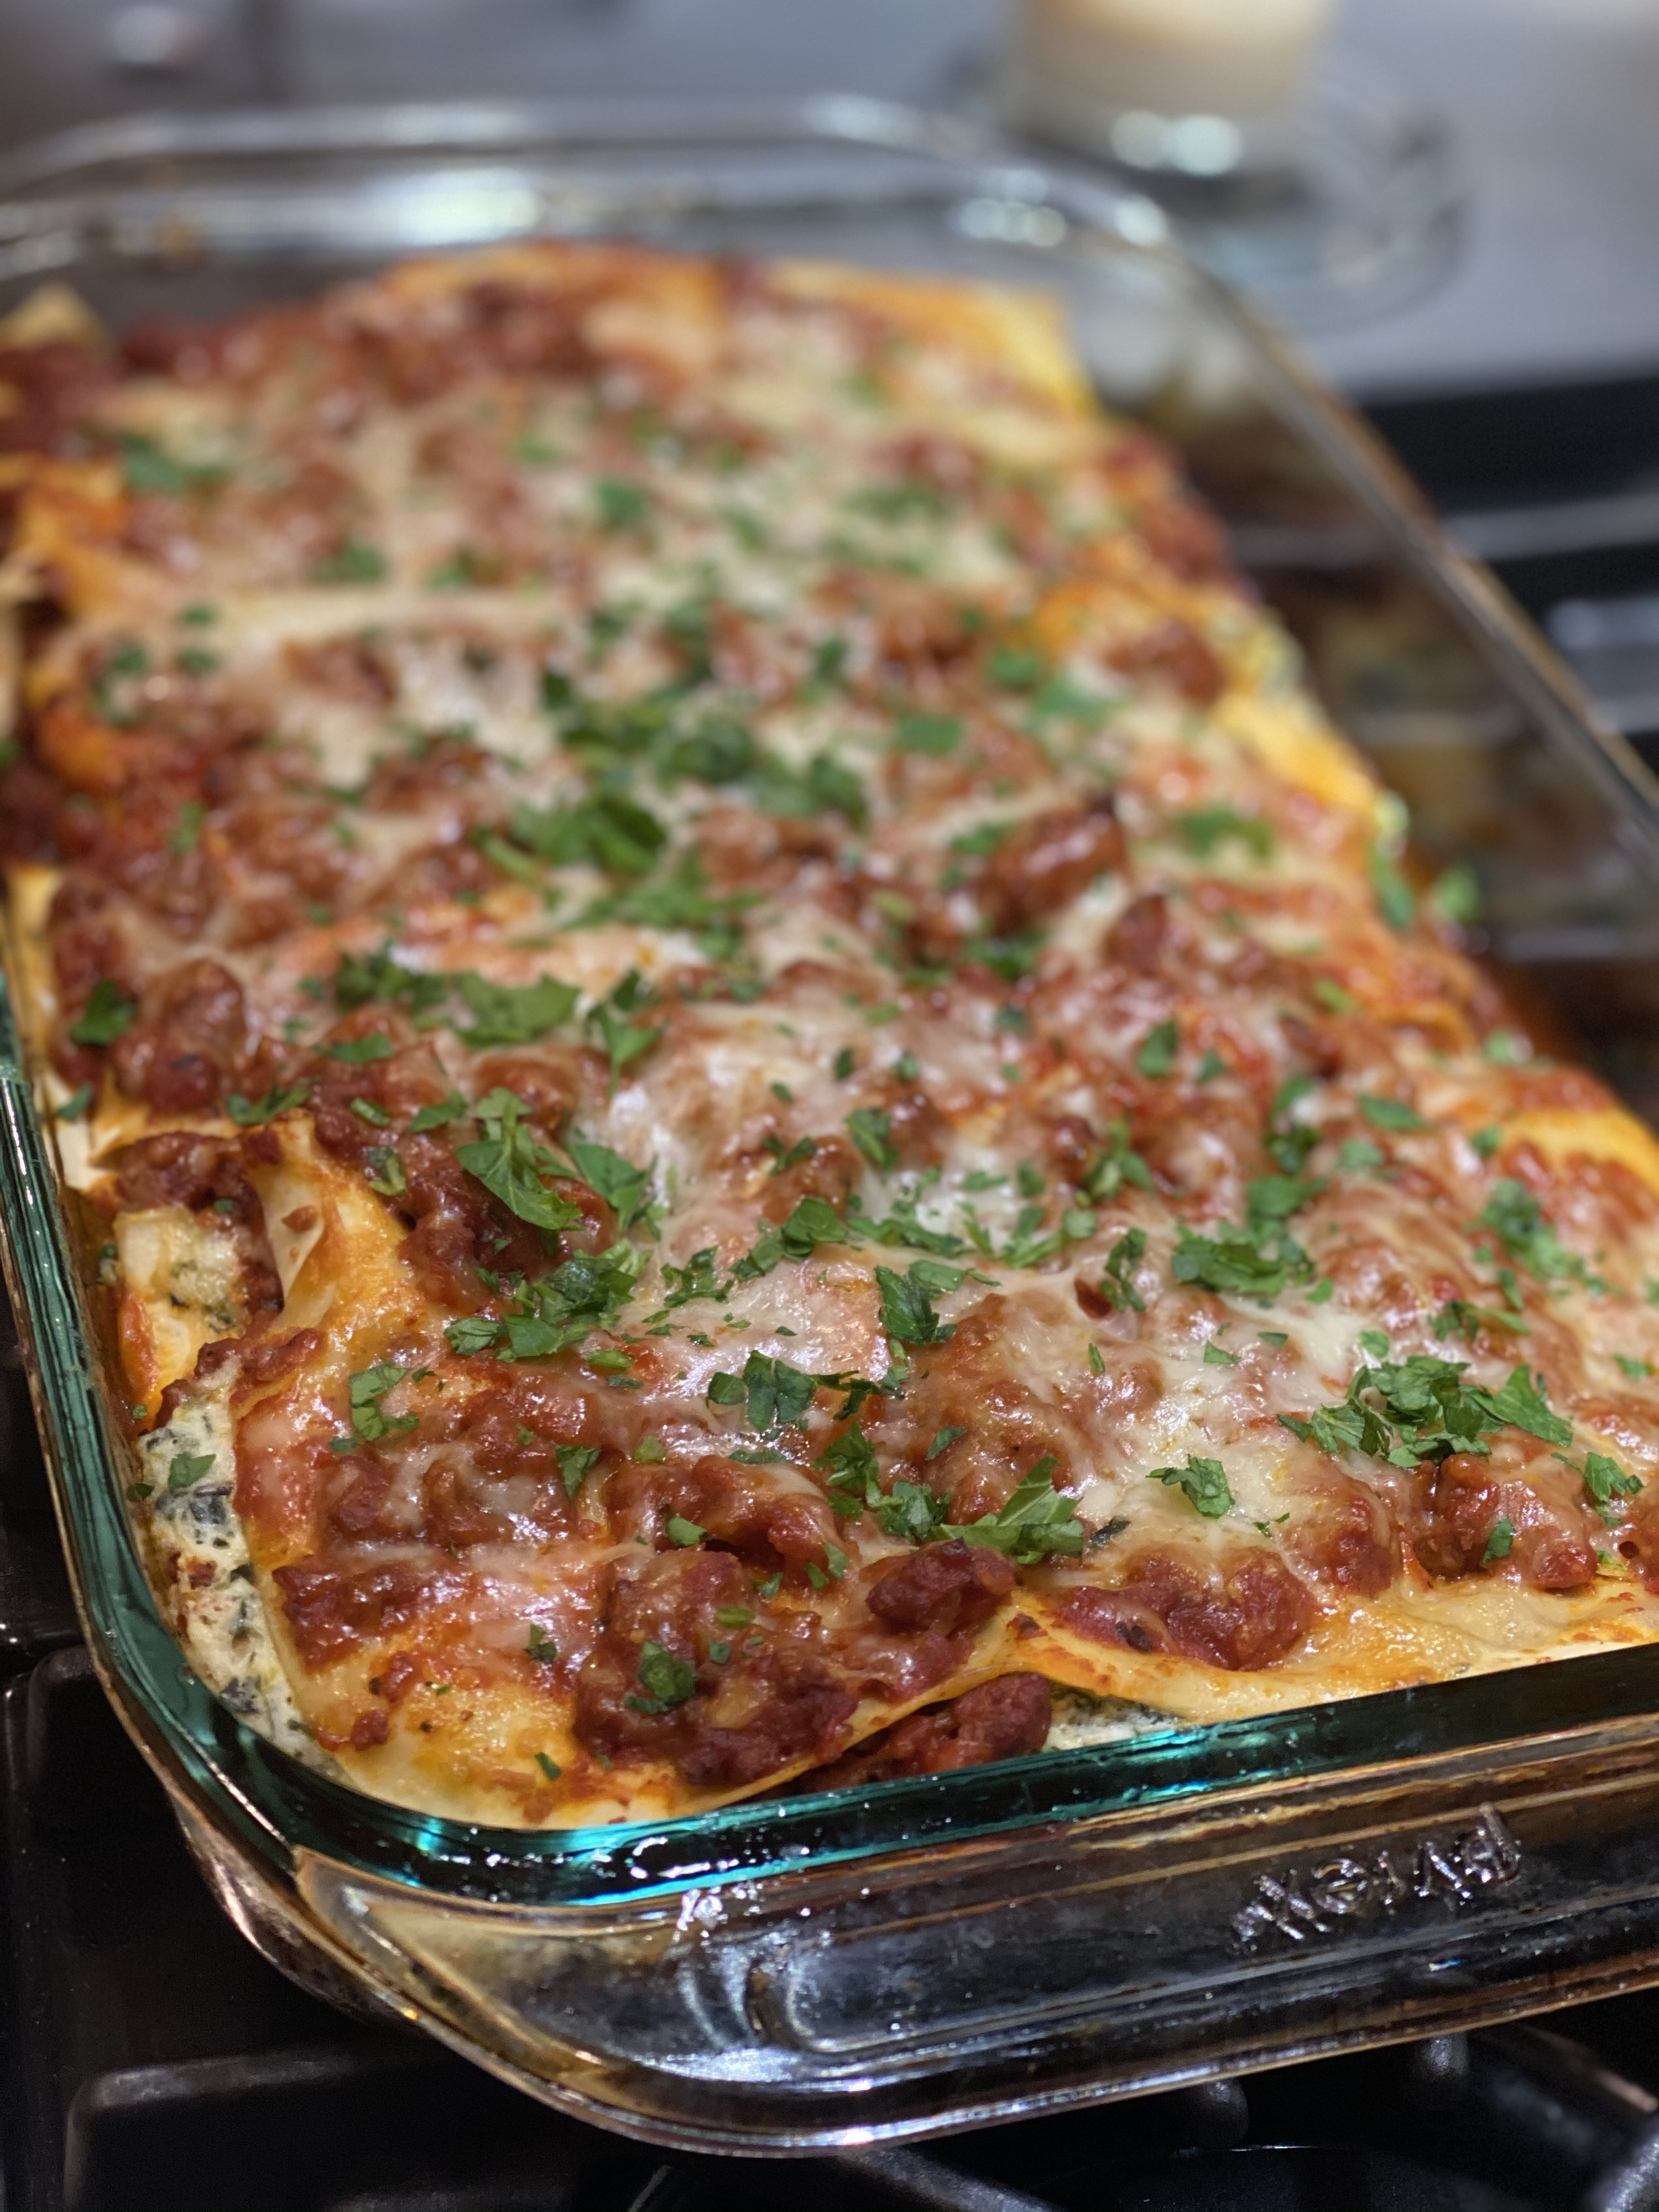 A baking dish filled with lasagna topped with tomato and meat sauce.